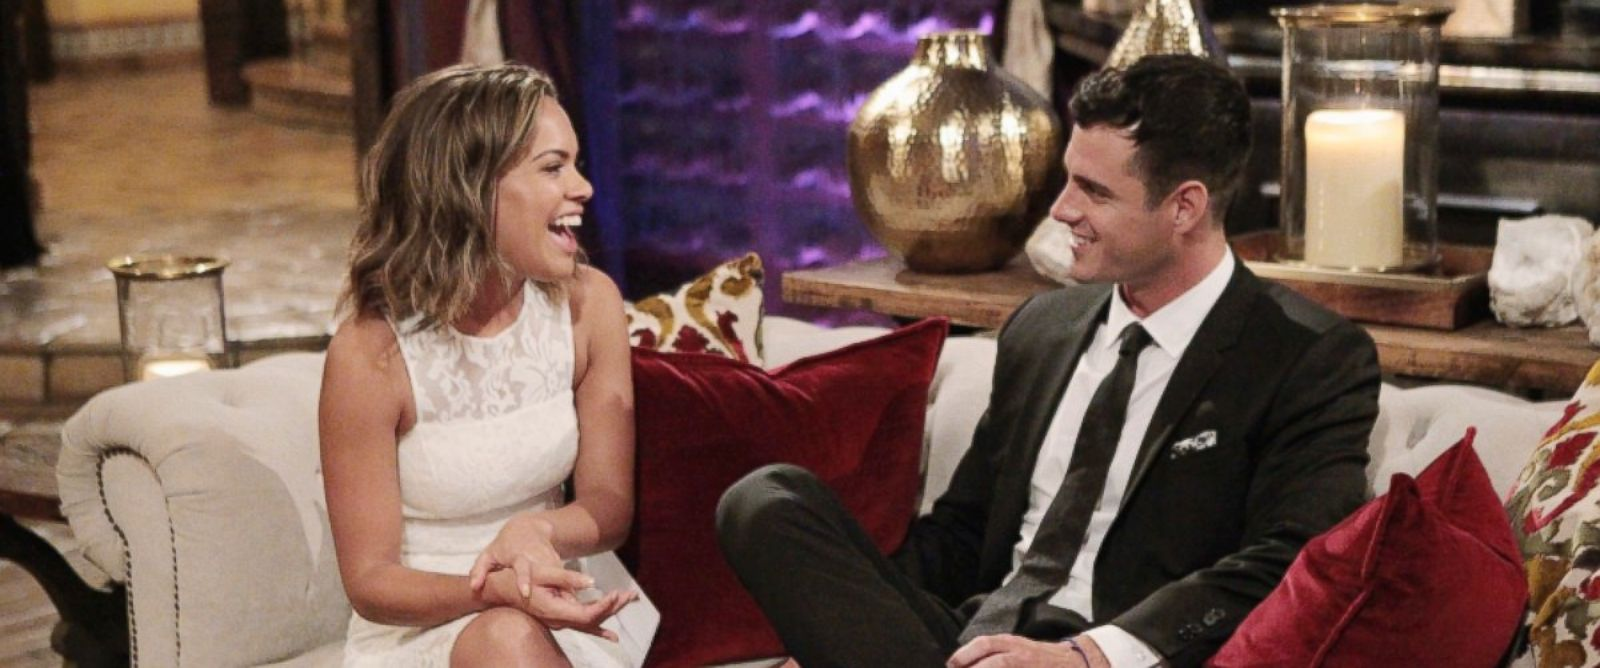 """PHOTO: """"The Bachelor,"""" premiered on Jan. 4, 2016, on the ABC Television Network. Pictured is contestant Jami, and """"The Bachelor,"""" Ben Higgins."""